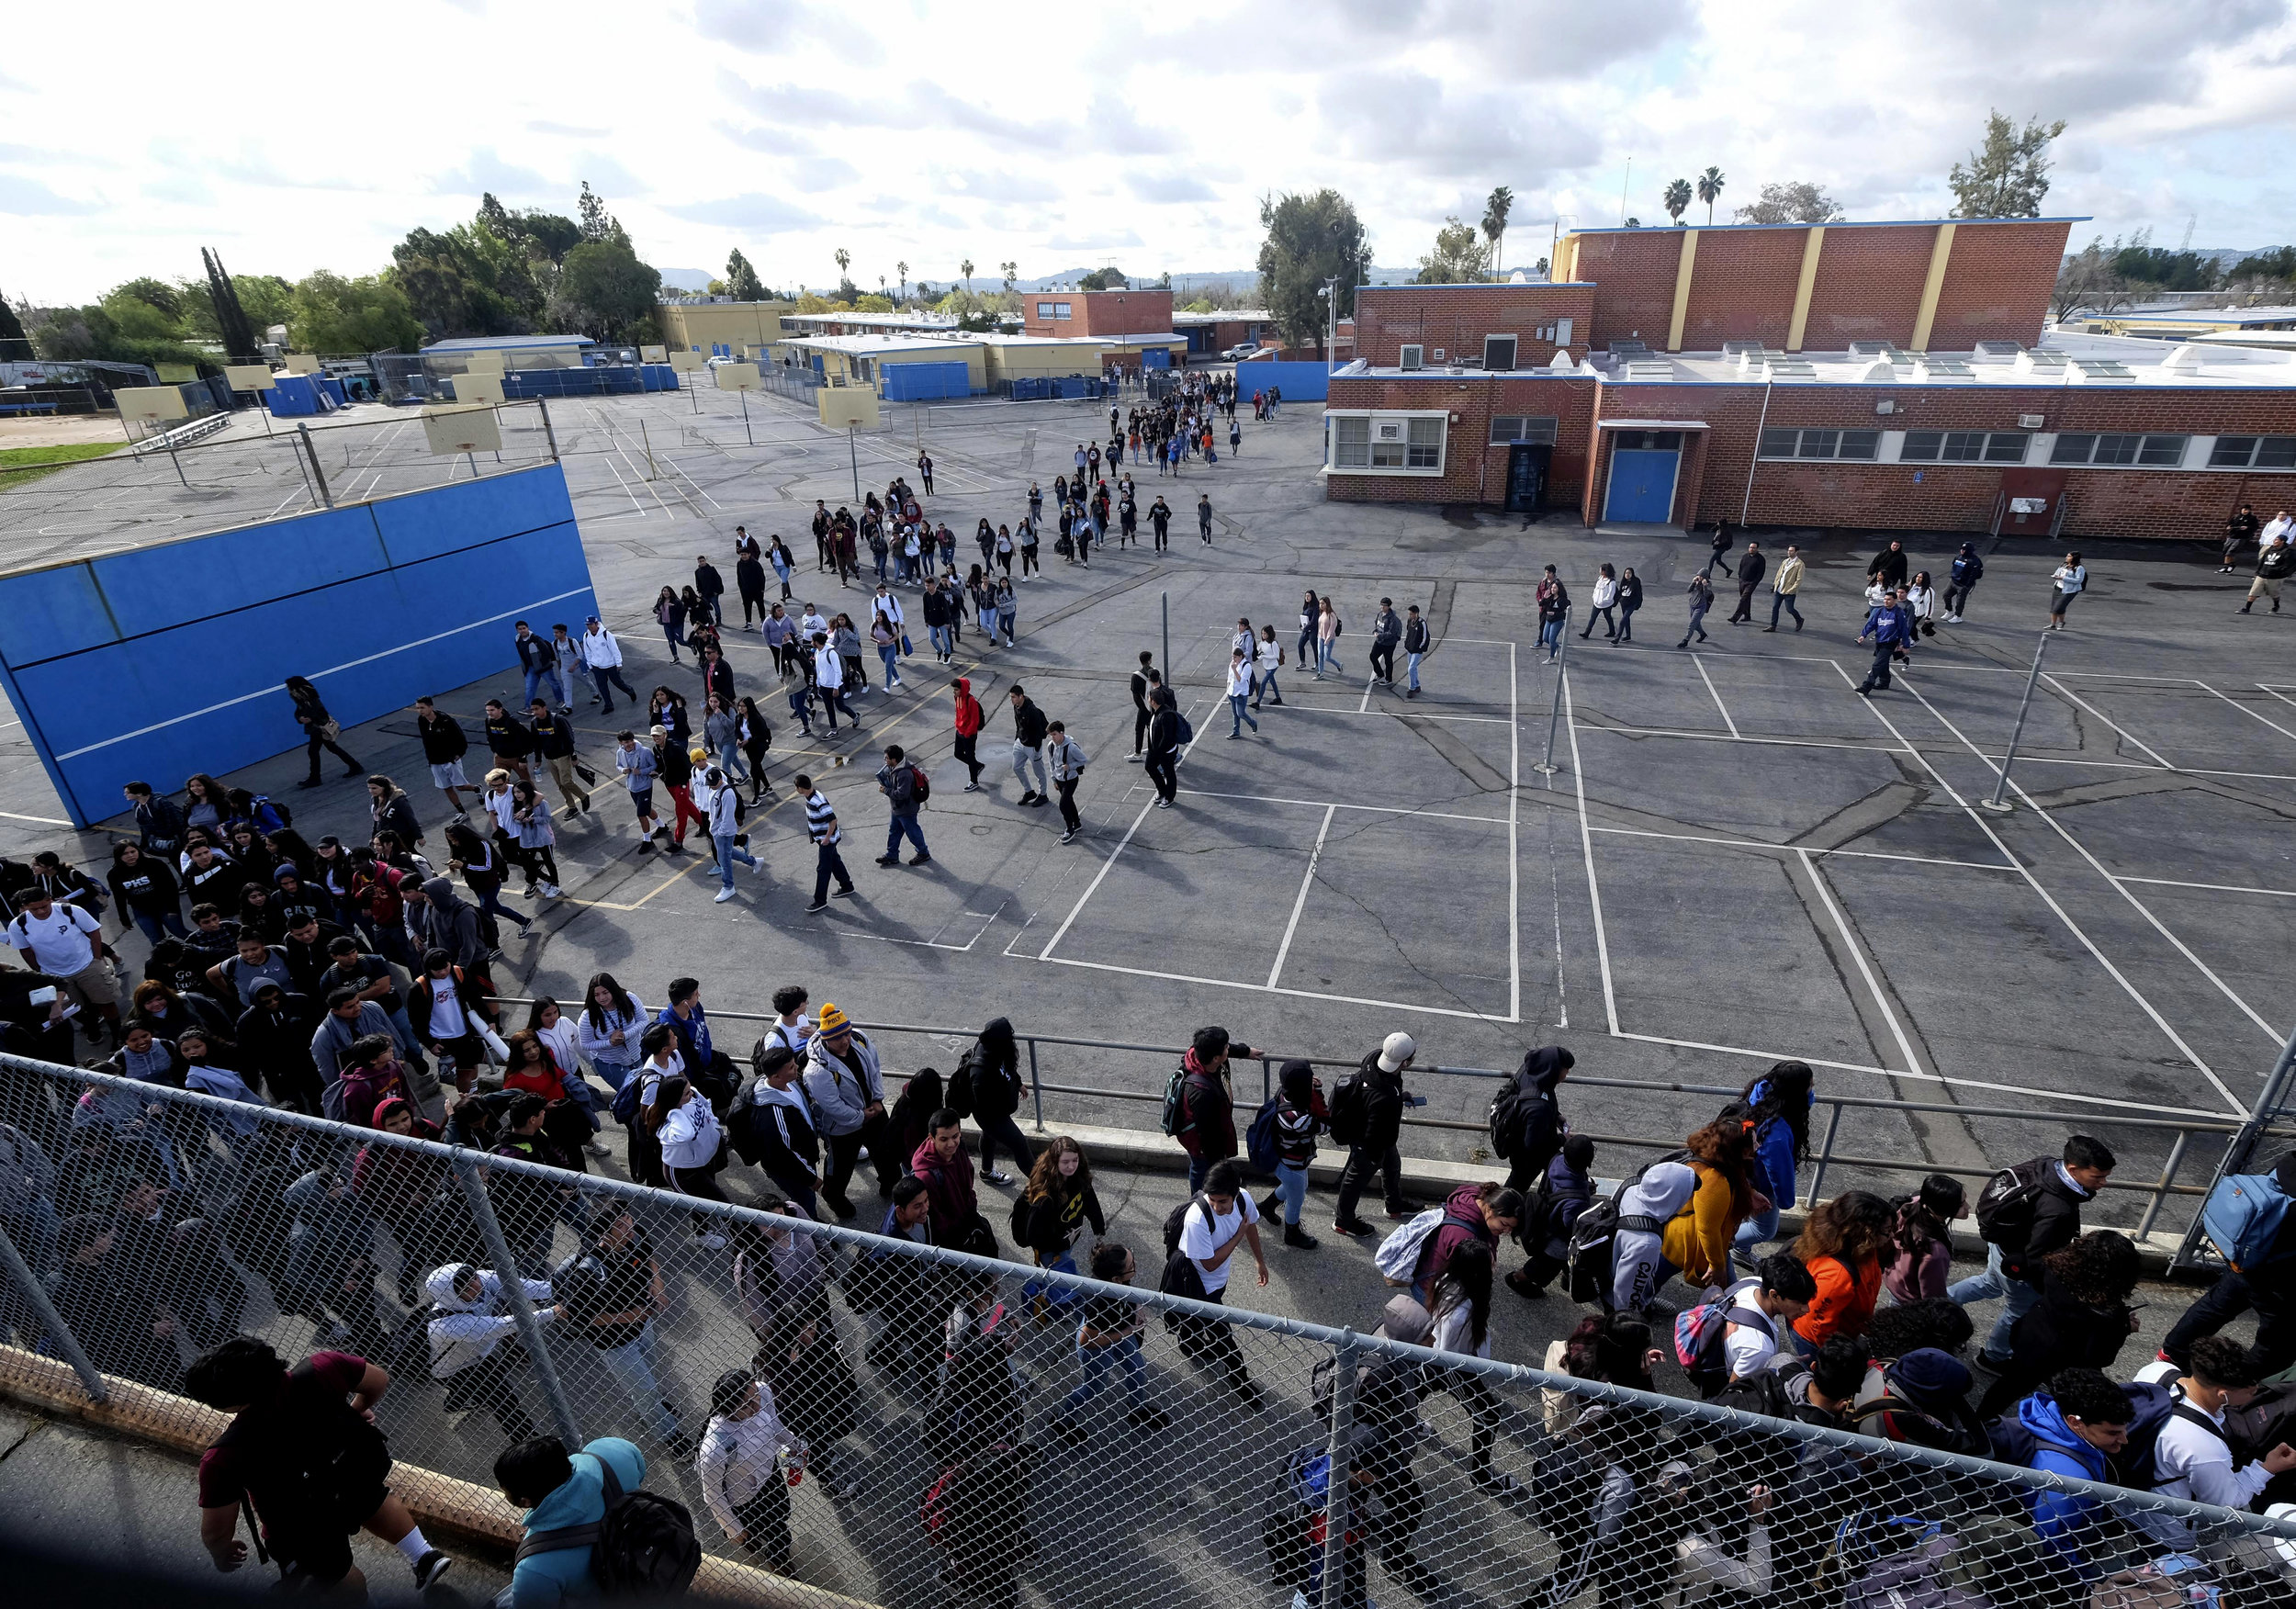 Students from Francis Polytechnic High School walk out their campus for ``#NeverAgain,'' an assembly which spotlights the meaning of school safety for students as part of a nationwide protest against gun violence, Wednesday, March 14, 2018, in Los Angeles.